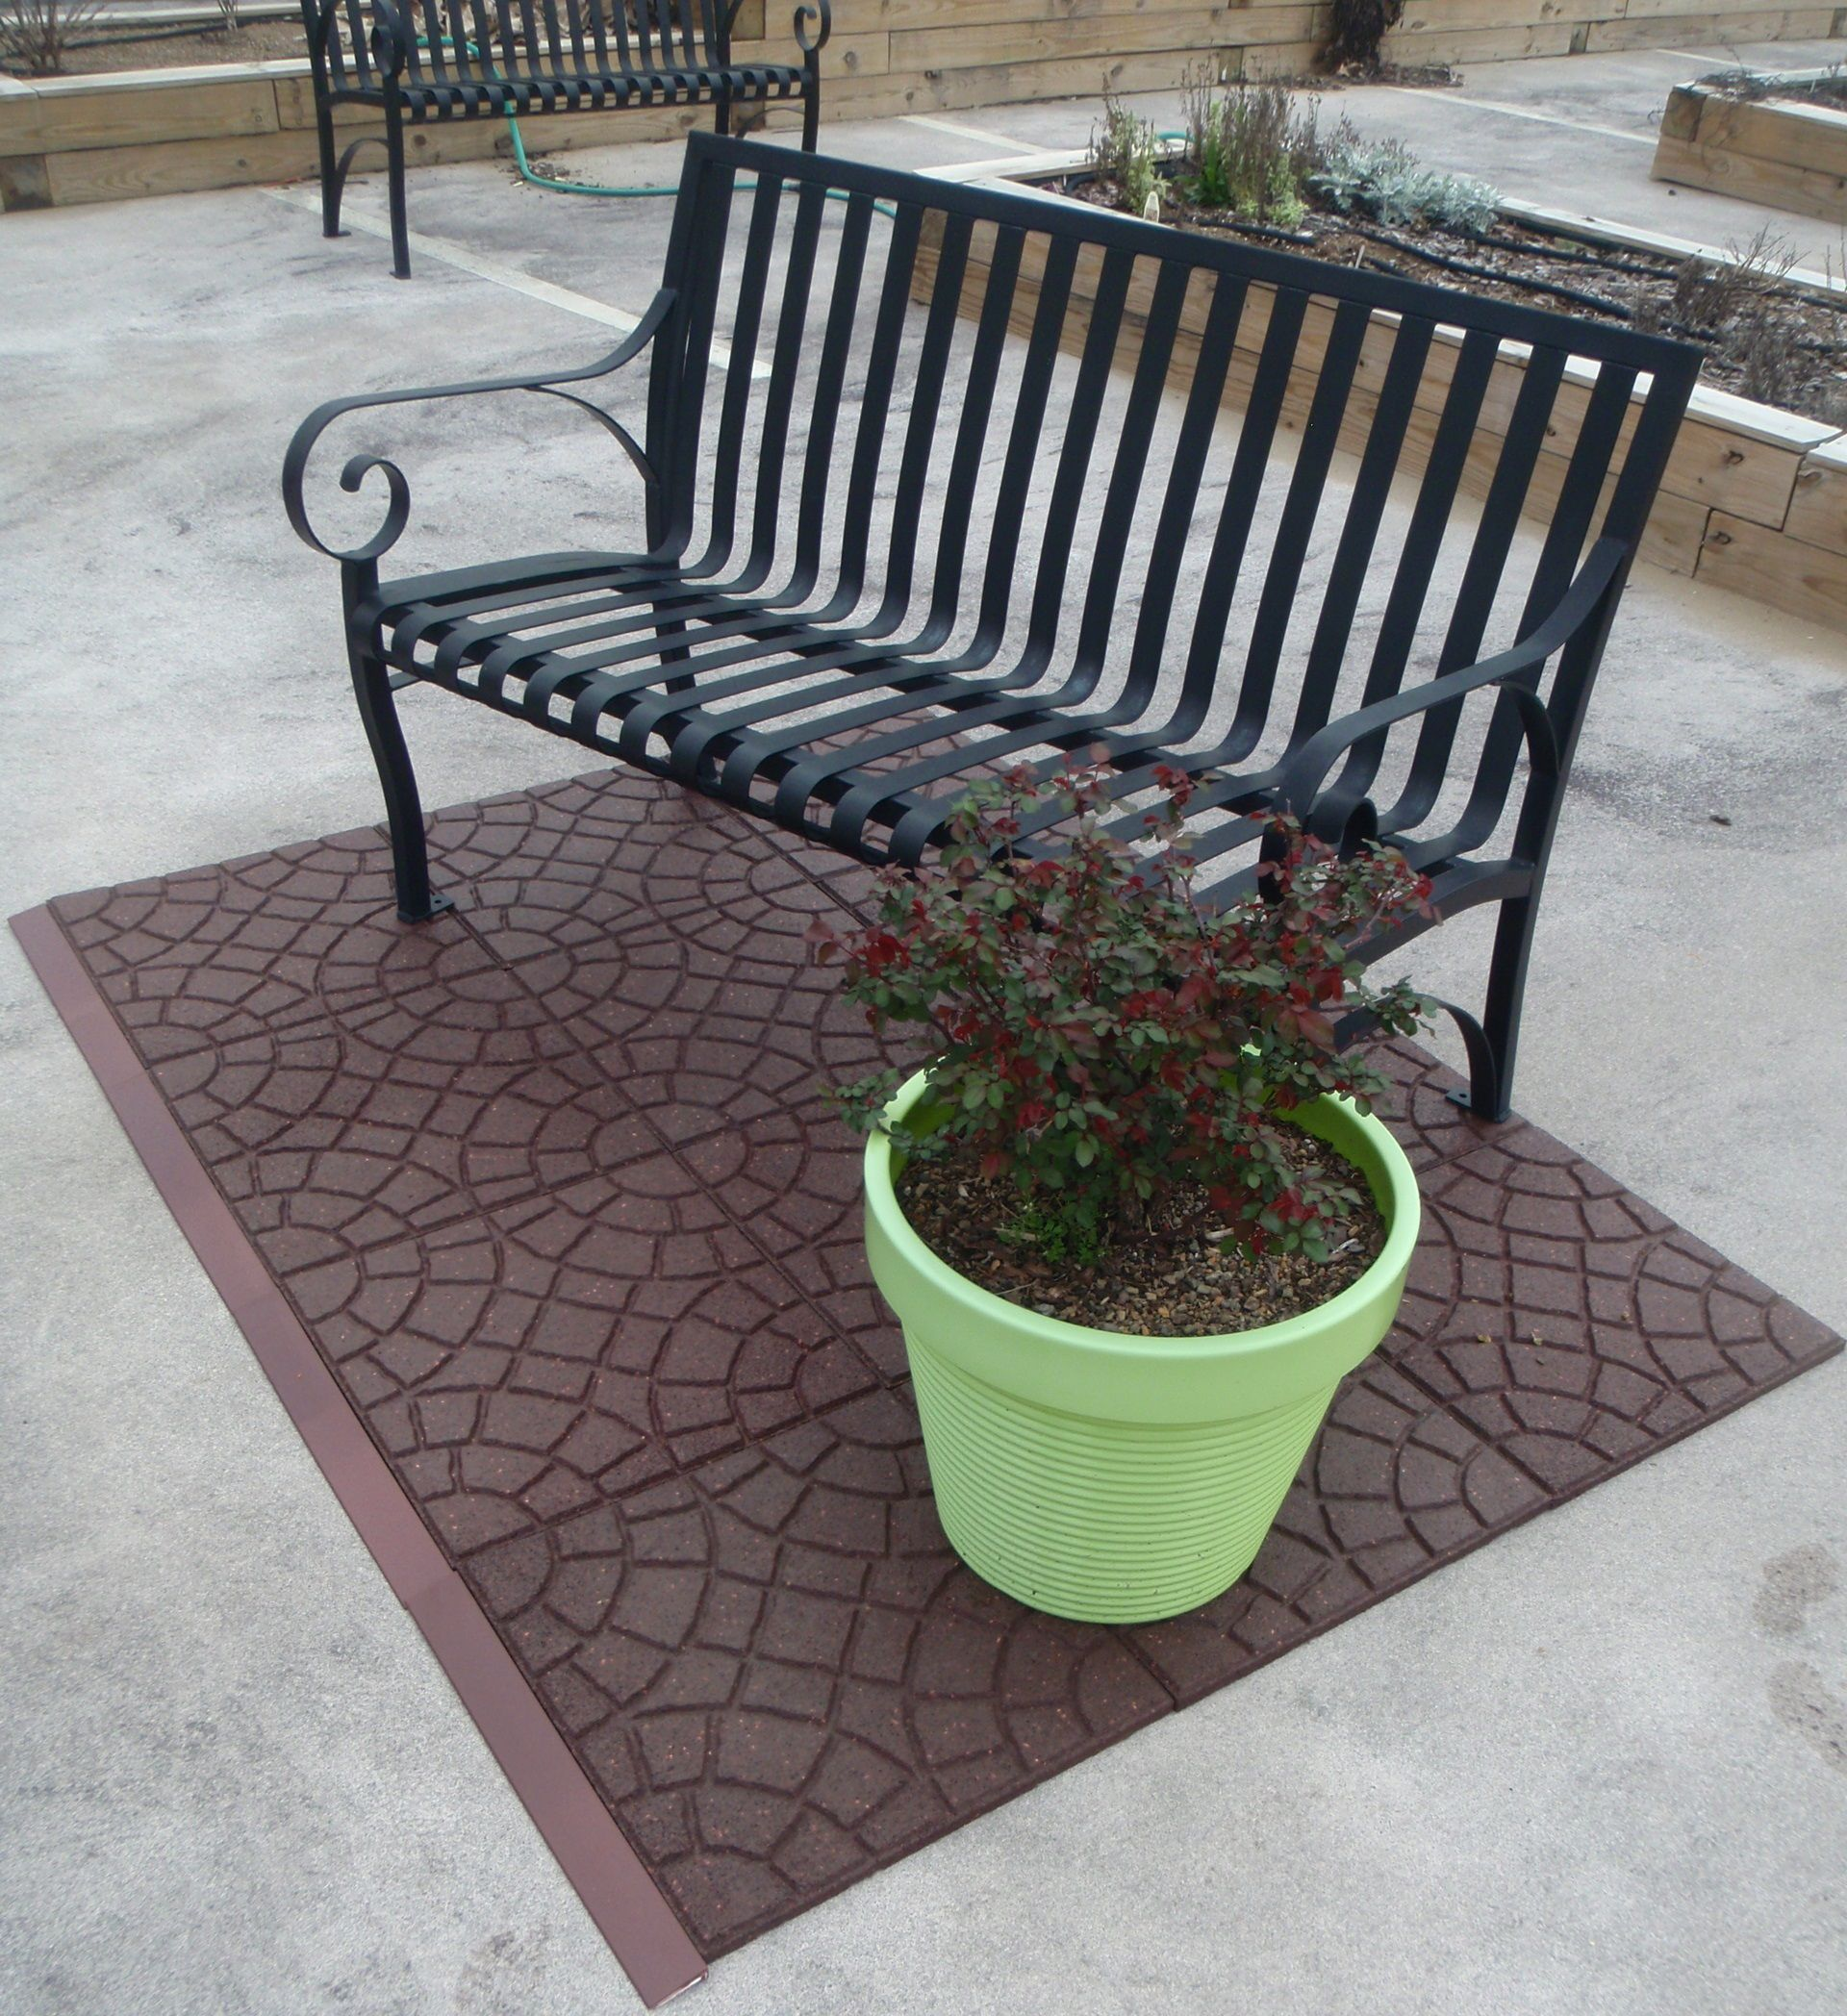 Home Depot sells Envirotiles a recycled rubber tile that can be